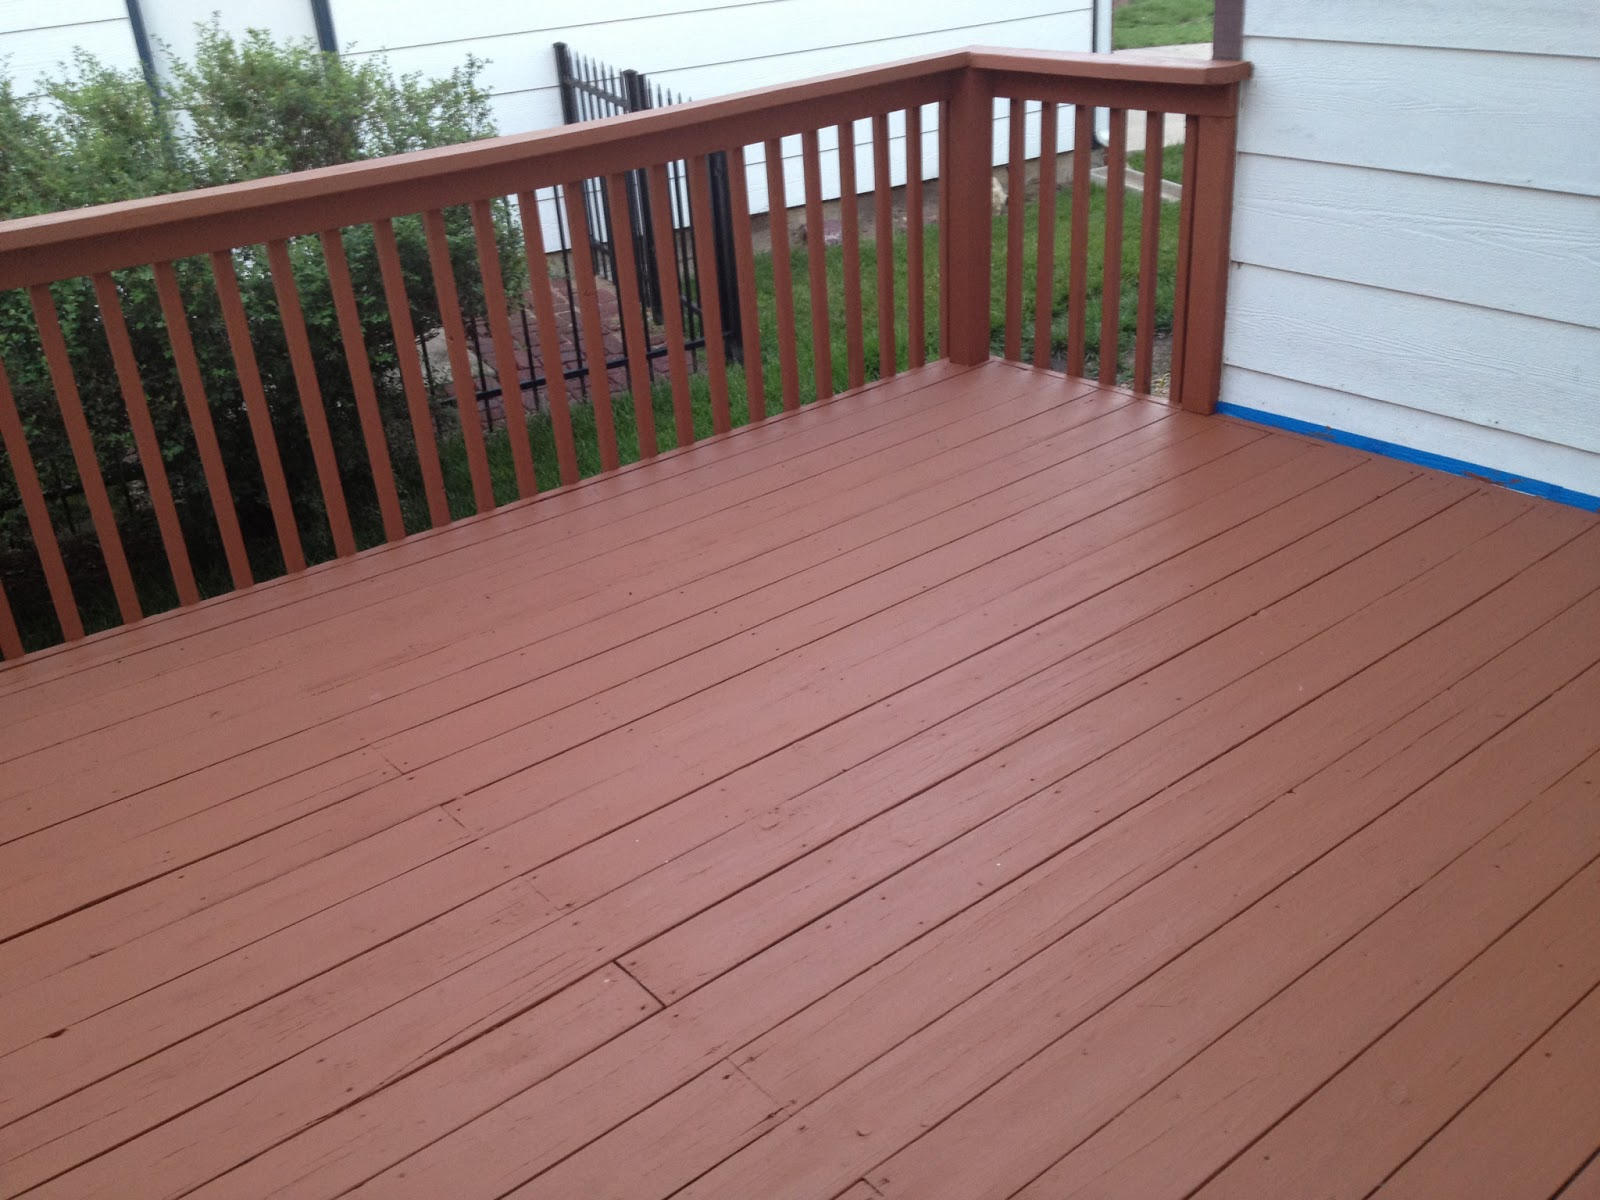 ... results for deck protectors rustoleum deck waterproofing systems